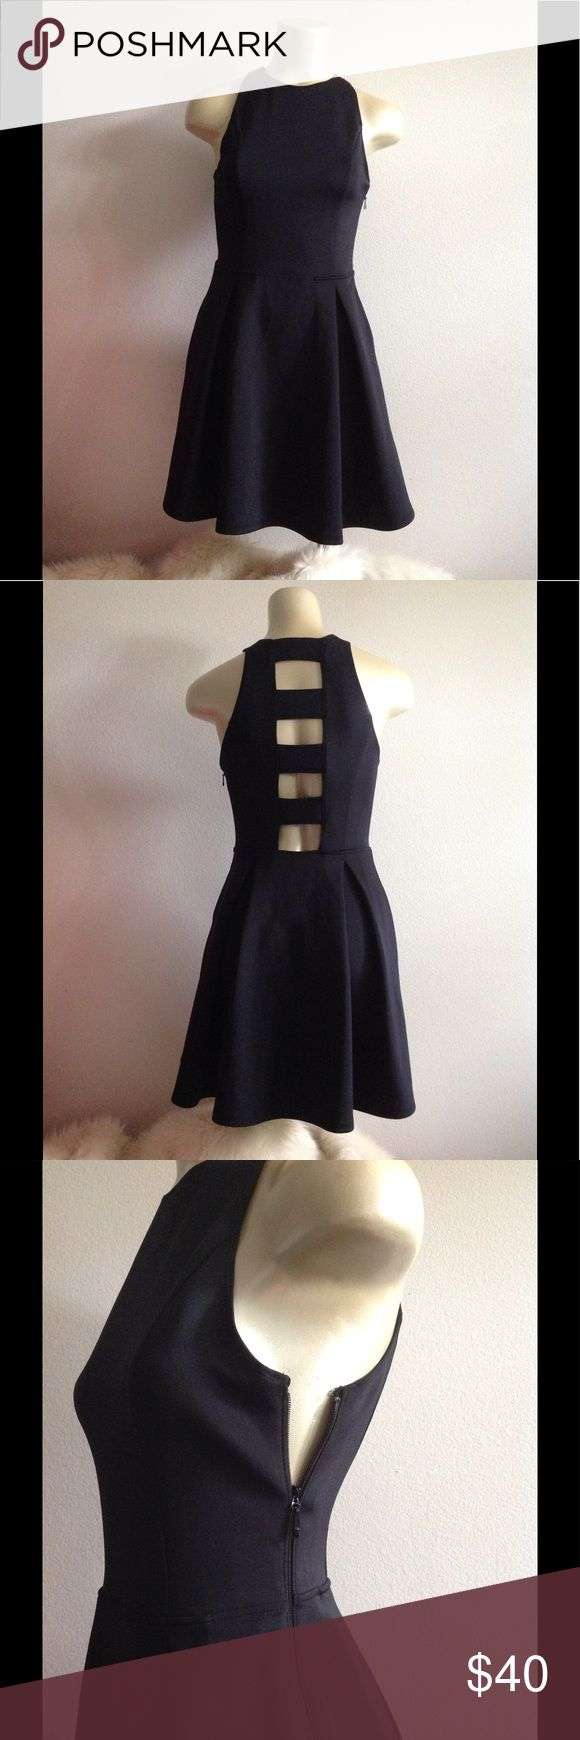 Abercrombie and Fitch dress Abercrombie and Fitch dress preowned size small dark color some time I time it's back and times I think it's very very dark blue working zipper on the side Abercrombie & Fitch Dresses